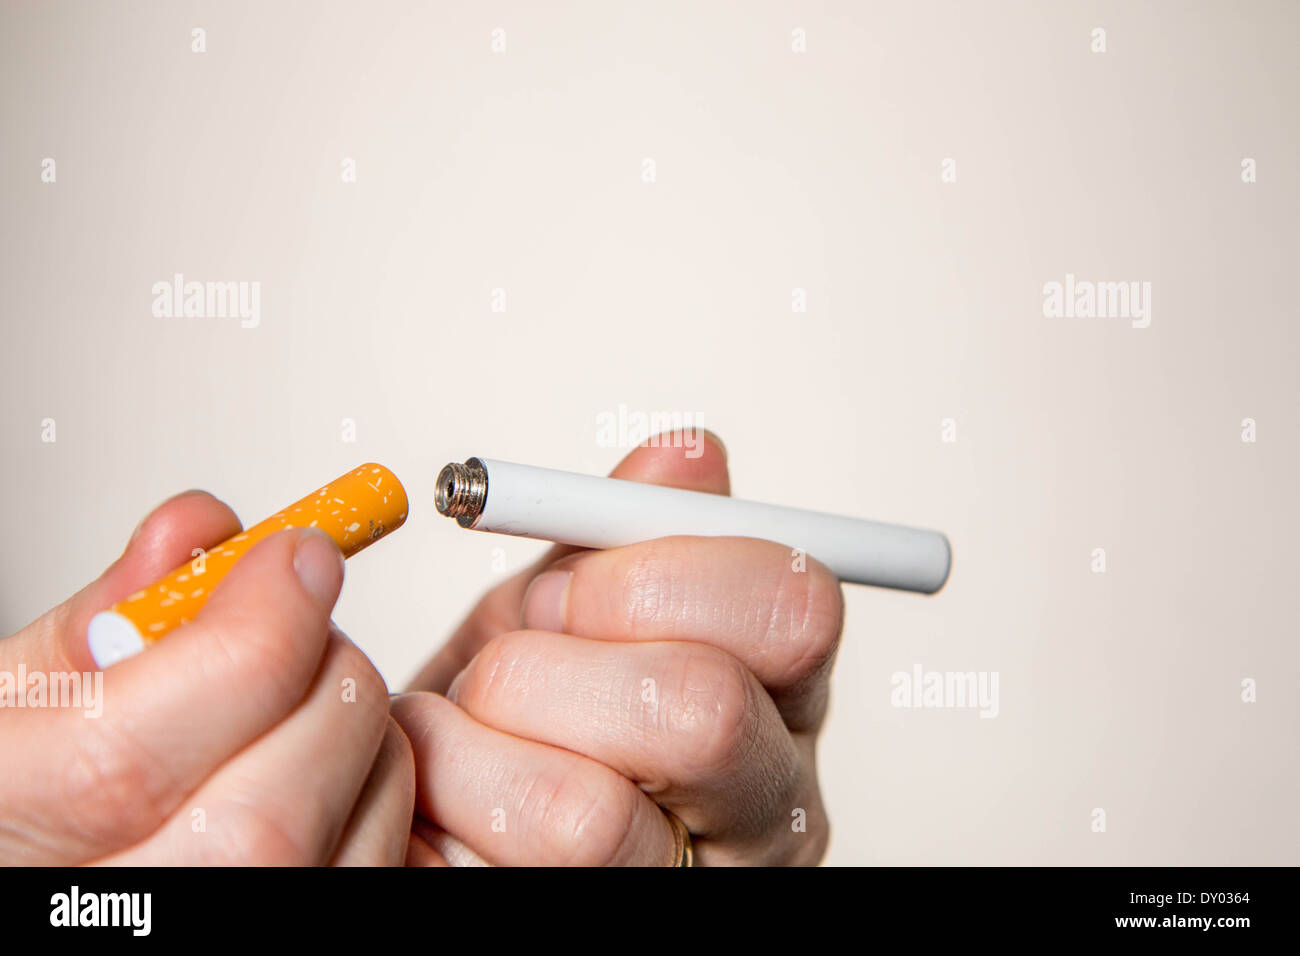 hands holding an electronic cigarette - Stock Image